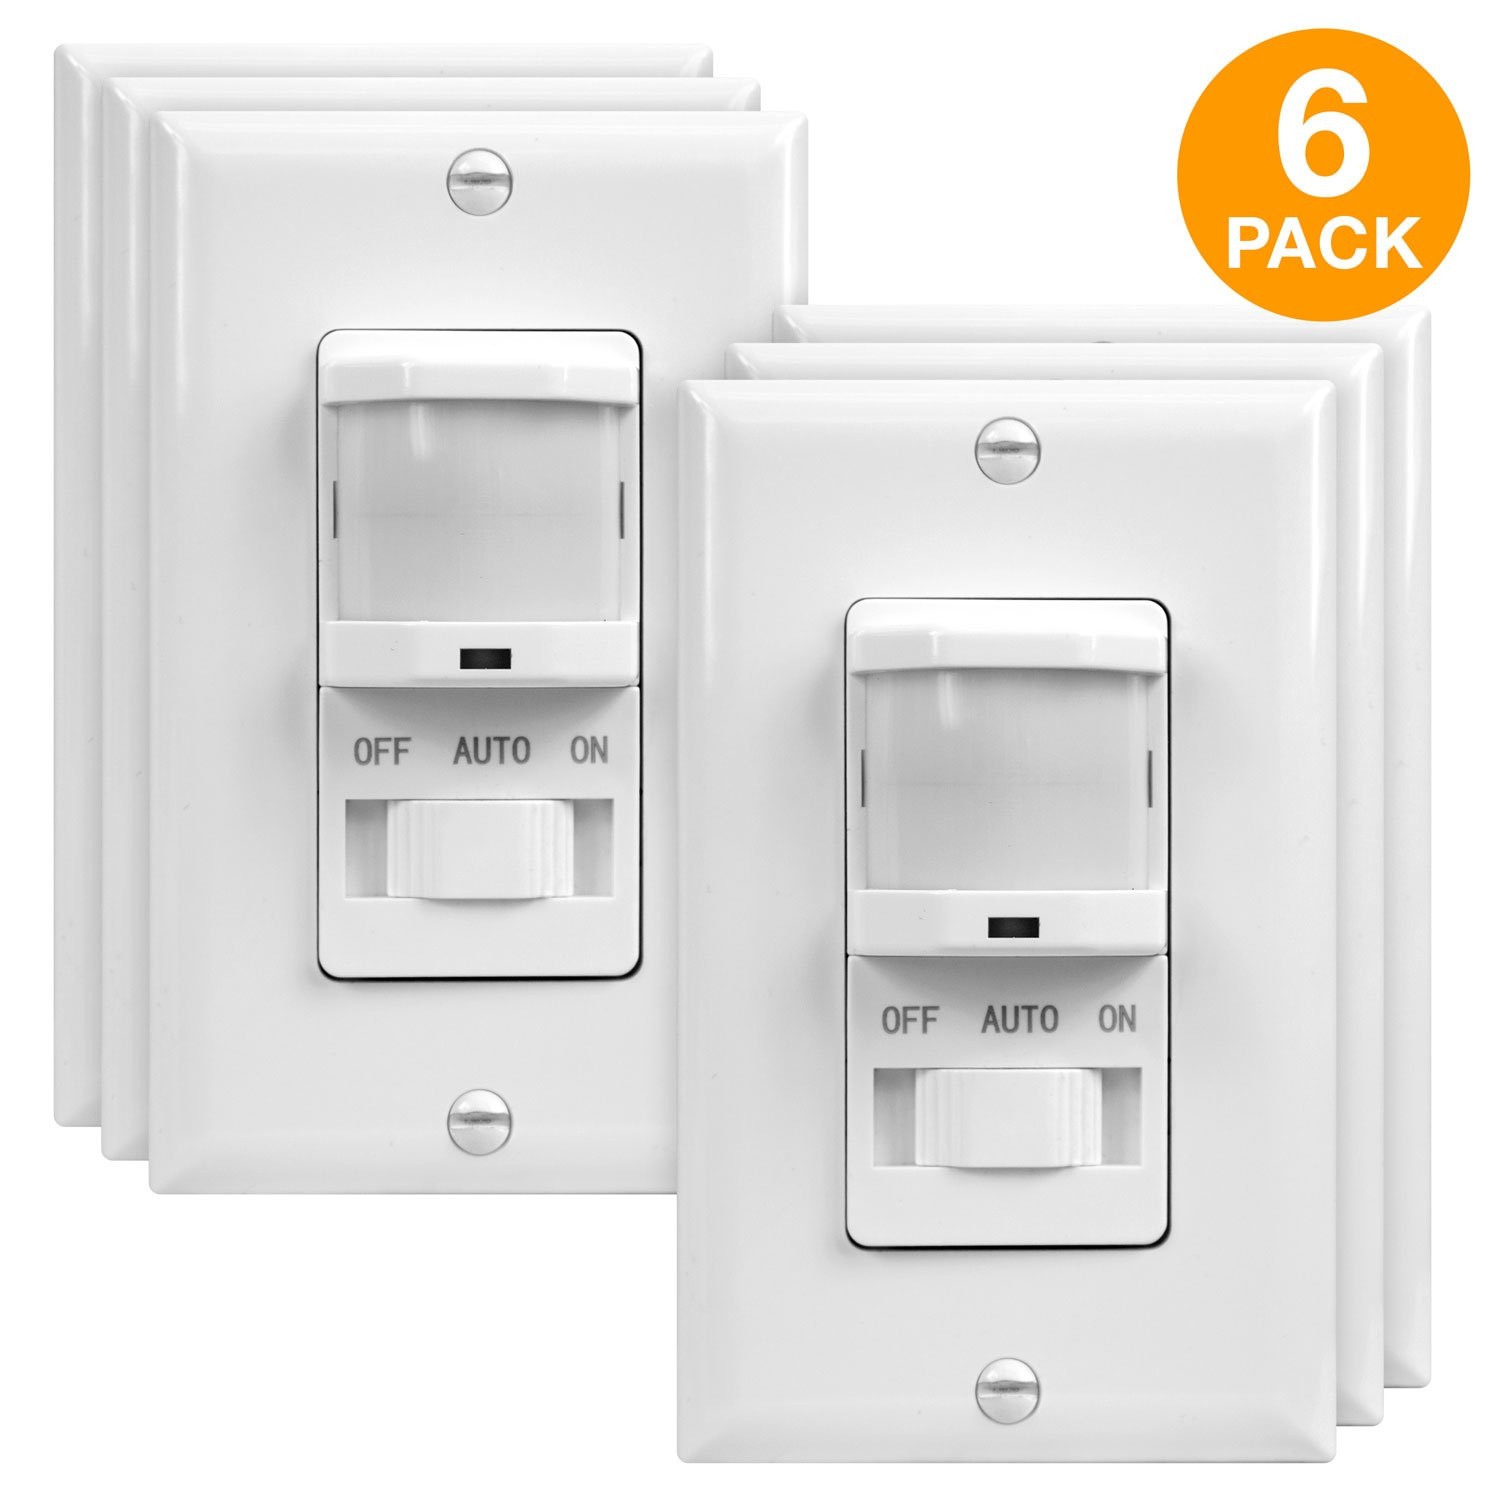 TOPGREENER TSOS5-W-6PCS PIR Sensor Switch, Occupancy Sensor Switch, Motion Sensor Switch, On/Off Override, 500W, Single Pole, NEUTRAL WIRE REQUIRED, White, 6 Pack